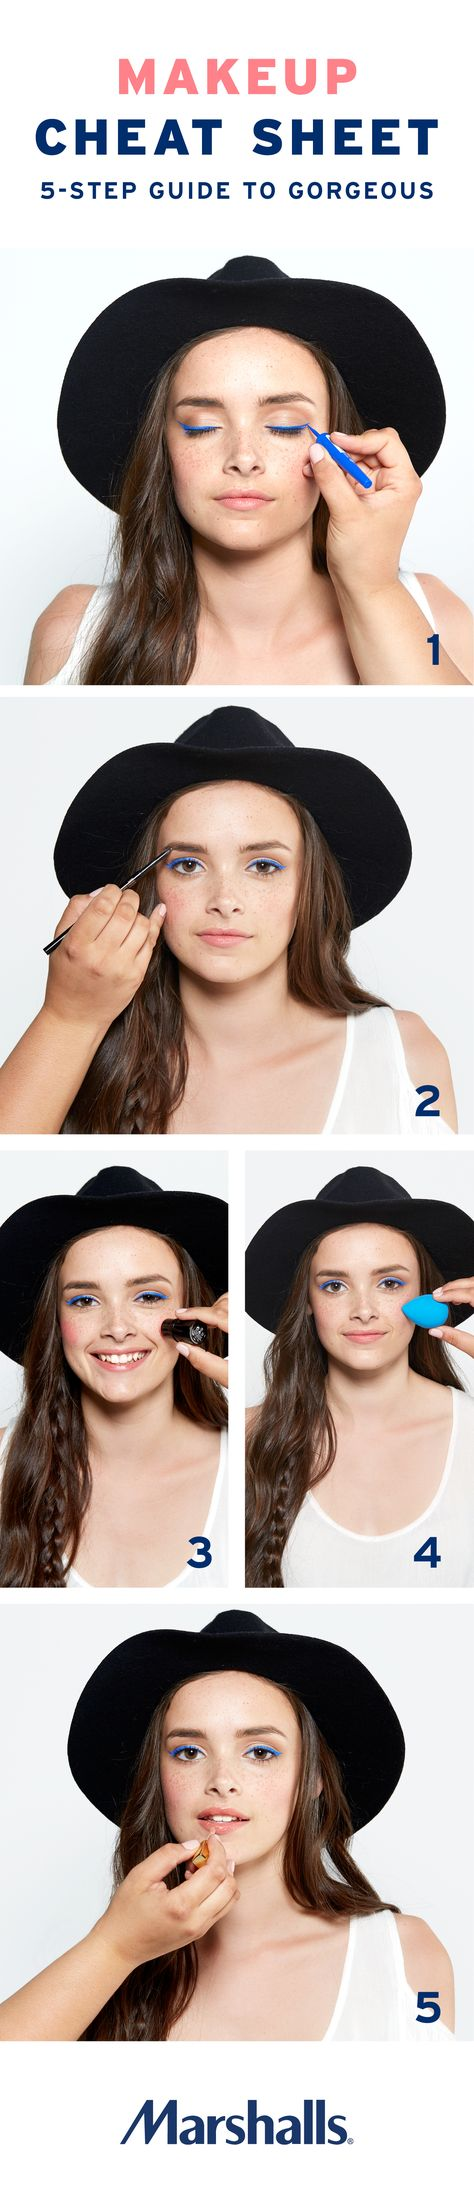 Makeup cheat sheet! Gorgeous makeup in 5 easy steps. 1) Create a cobalt cat eye that's sure to turn heads. 2) Use a brow pencil to fill and shape your brows. 3) Bring a little color to your cheekbones with a must-have blush stick. 4) Use a beauty blender to naturally blend color. 5) Then add some pink to your pout with simply chic gloss. Visit Marshalls today to build your new beauty routine!